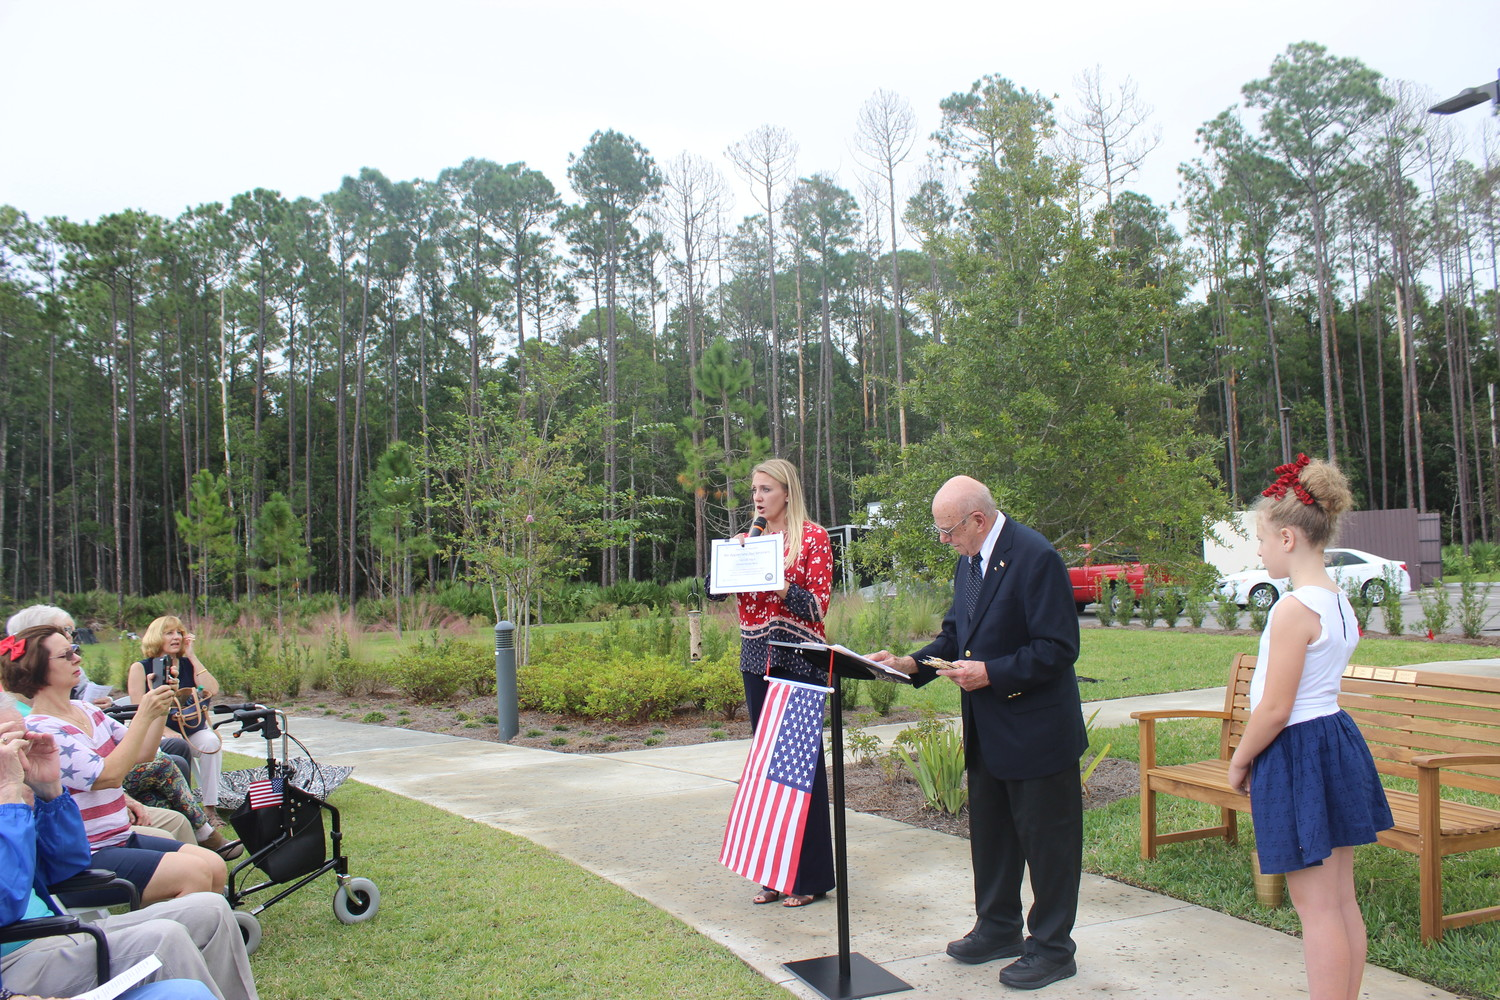 Starling at Nocatee Executive Director Megan Kennedy (left) addresses attendees of the facility's Veterans Day event on Nov. 12 and discusses certificates and pins that were presented to veterans and spouses.